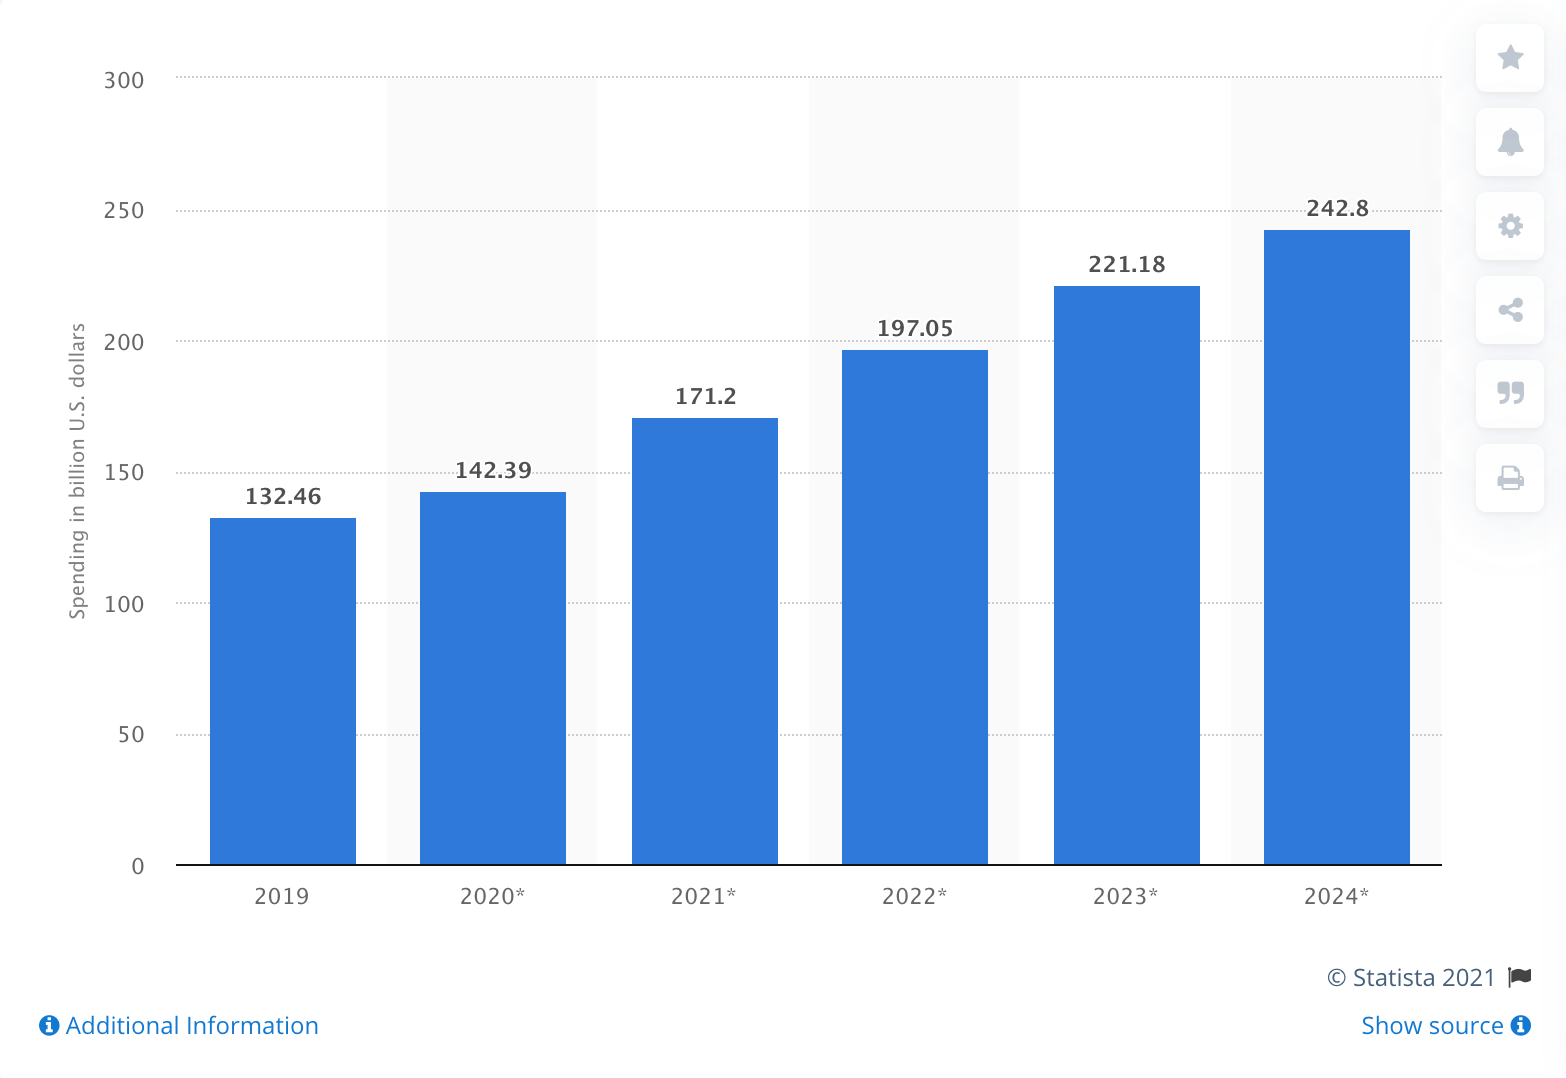 Digital advertising spending in the United States from 2019 to 2024 (in billion U.S. dollars)